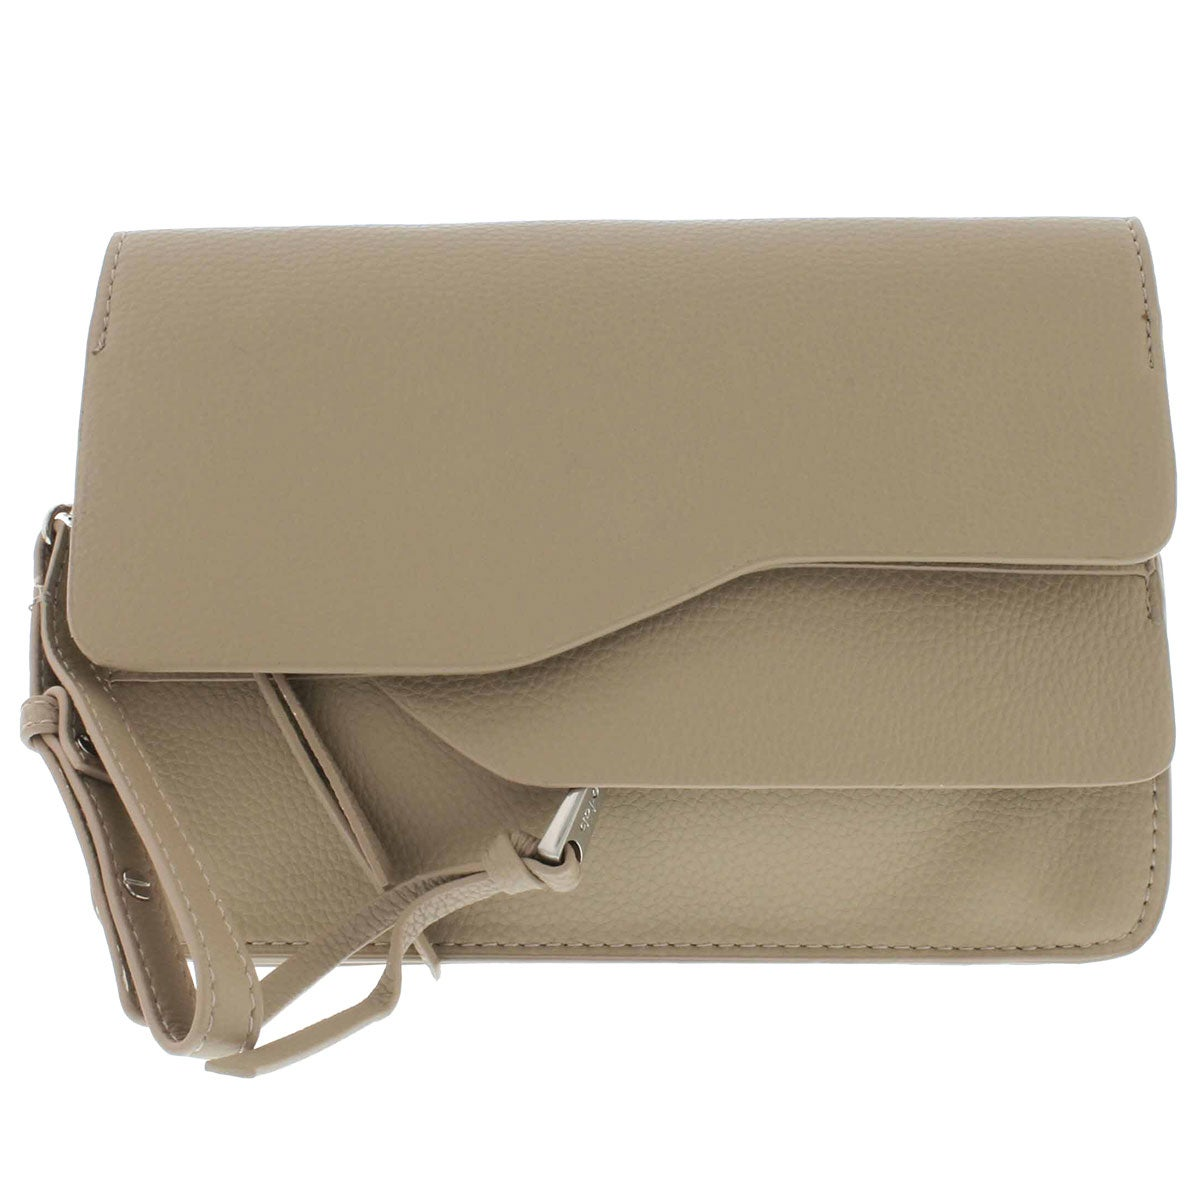 Women's CHRIS taupe convertible clutch wristlet